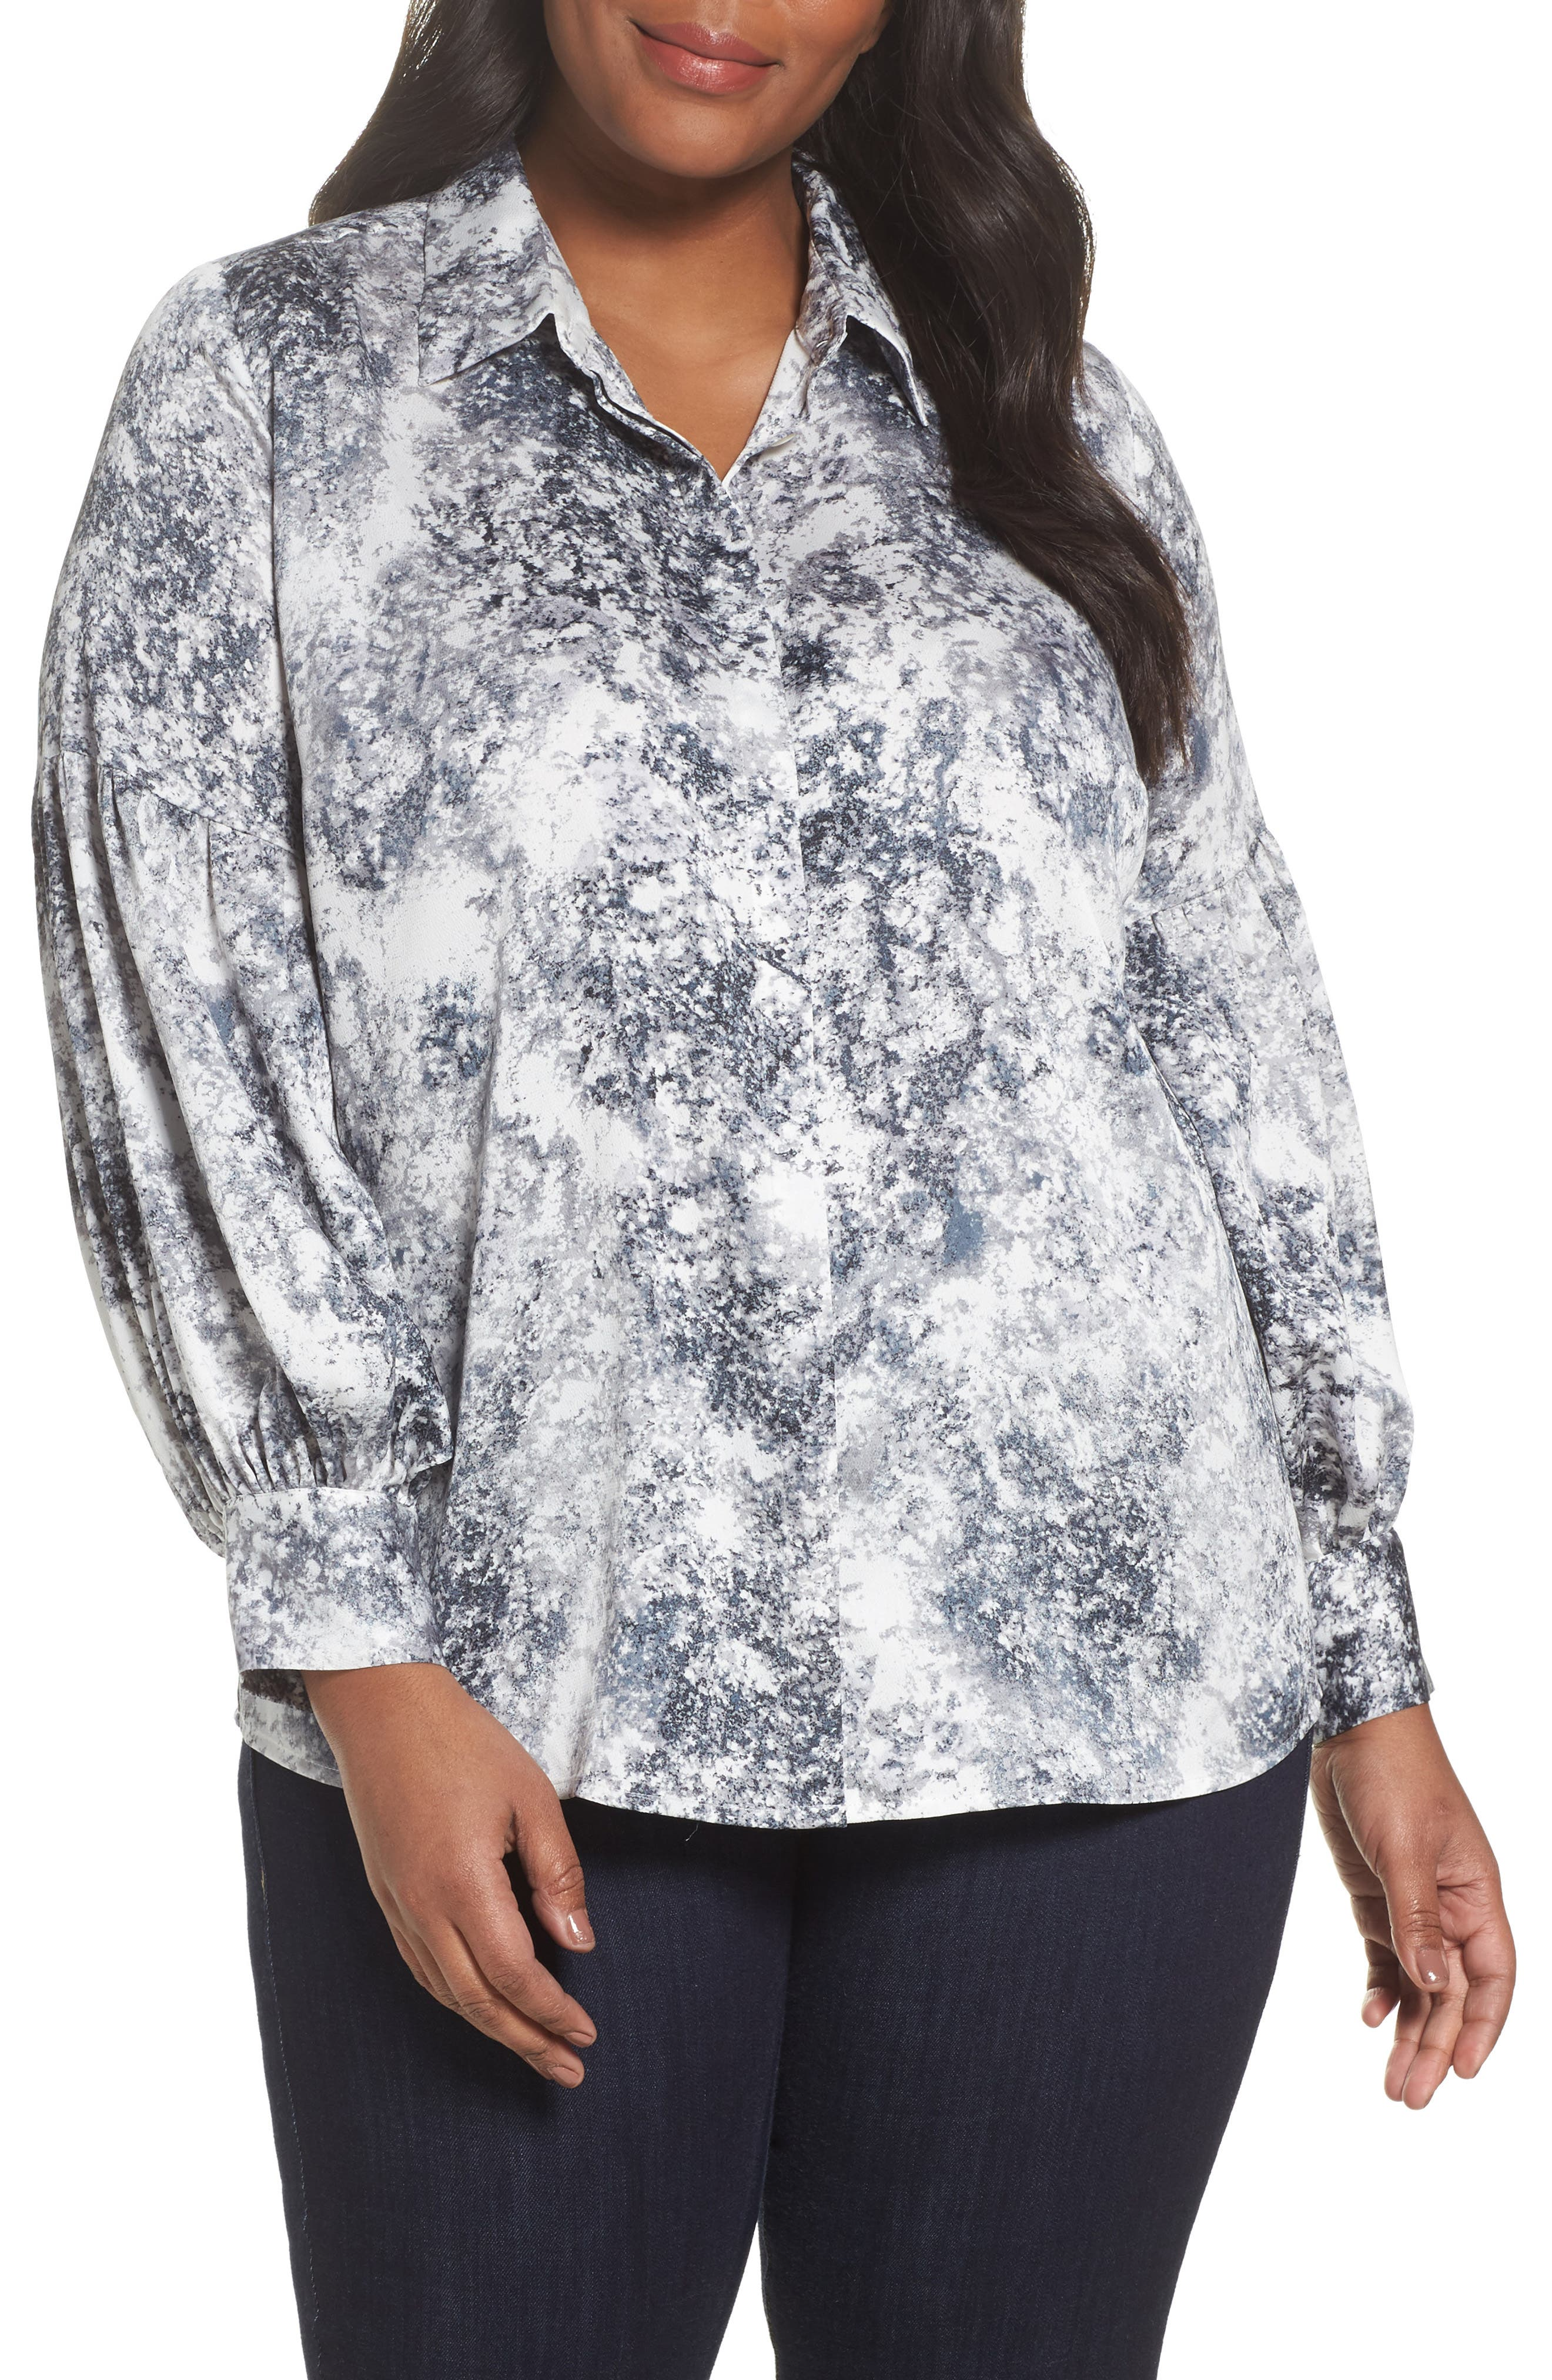 Speckled Print Blouse,                             Main thumbnail 1, color,                             108